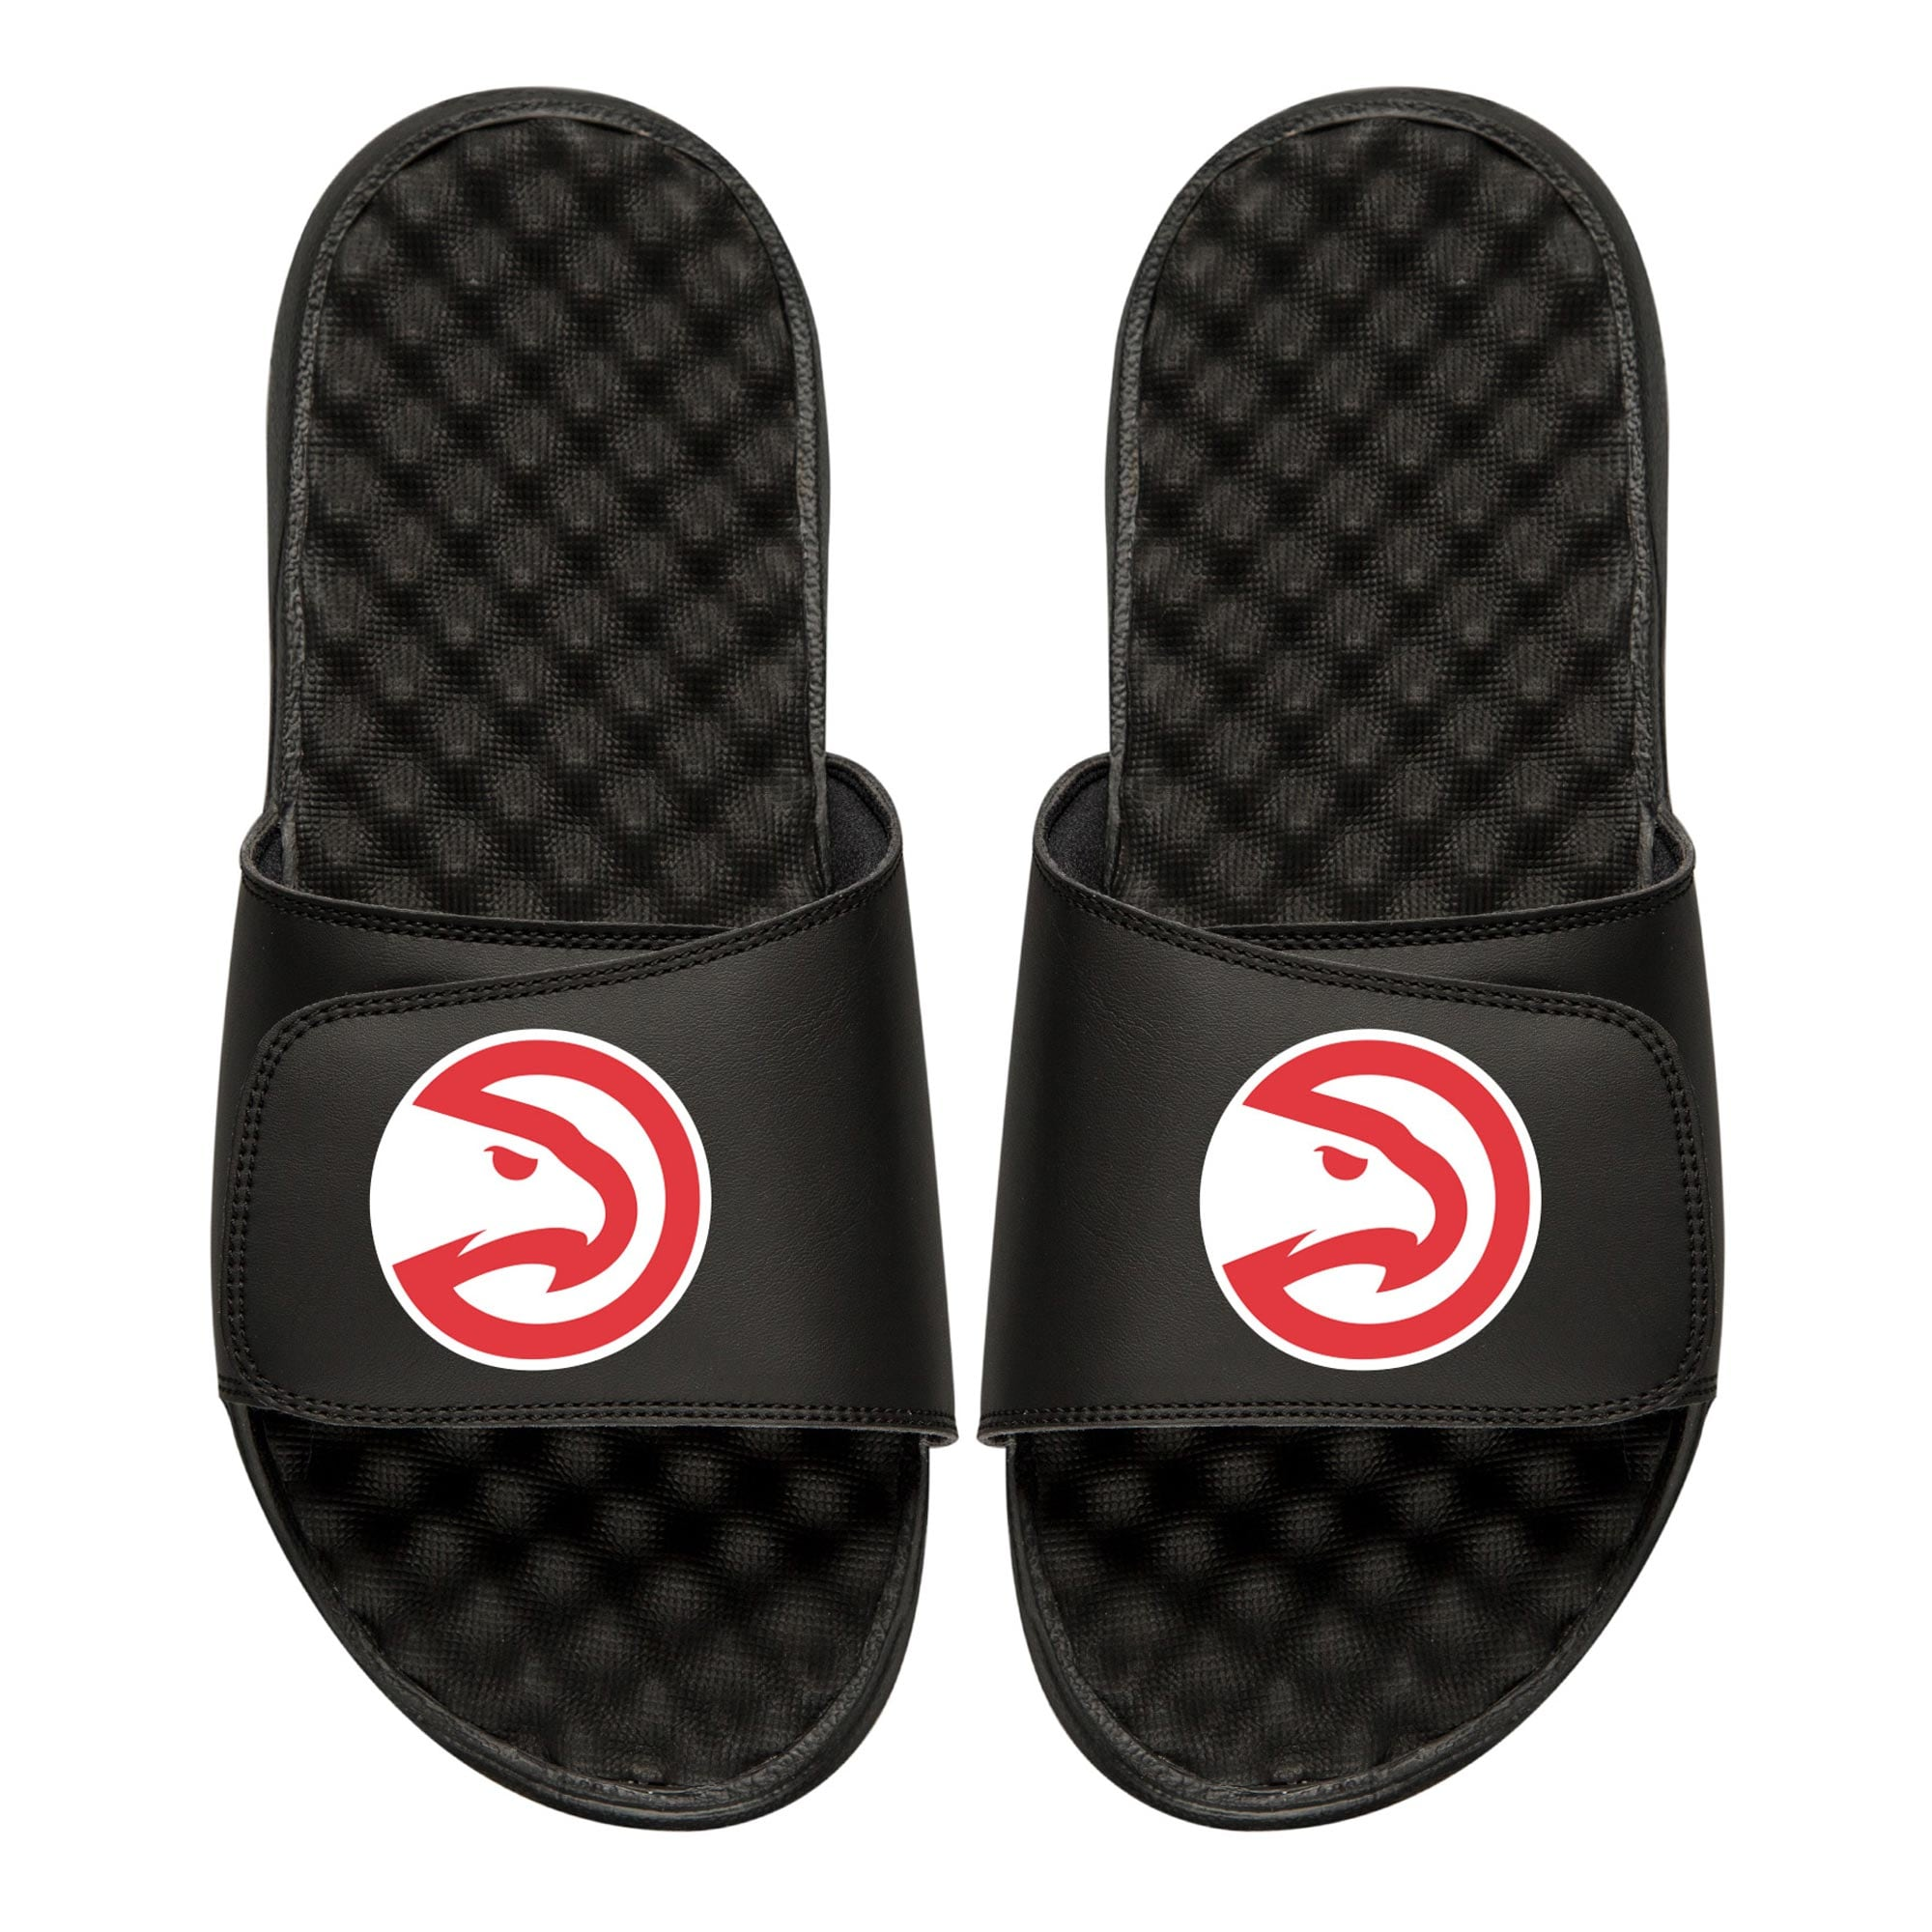 Atlanta Hawks Primary iSlide Sandals - Black